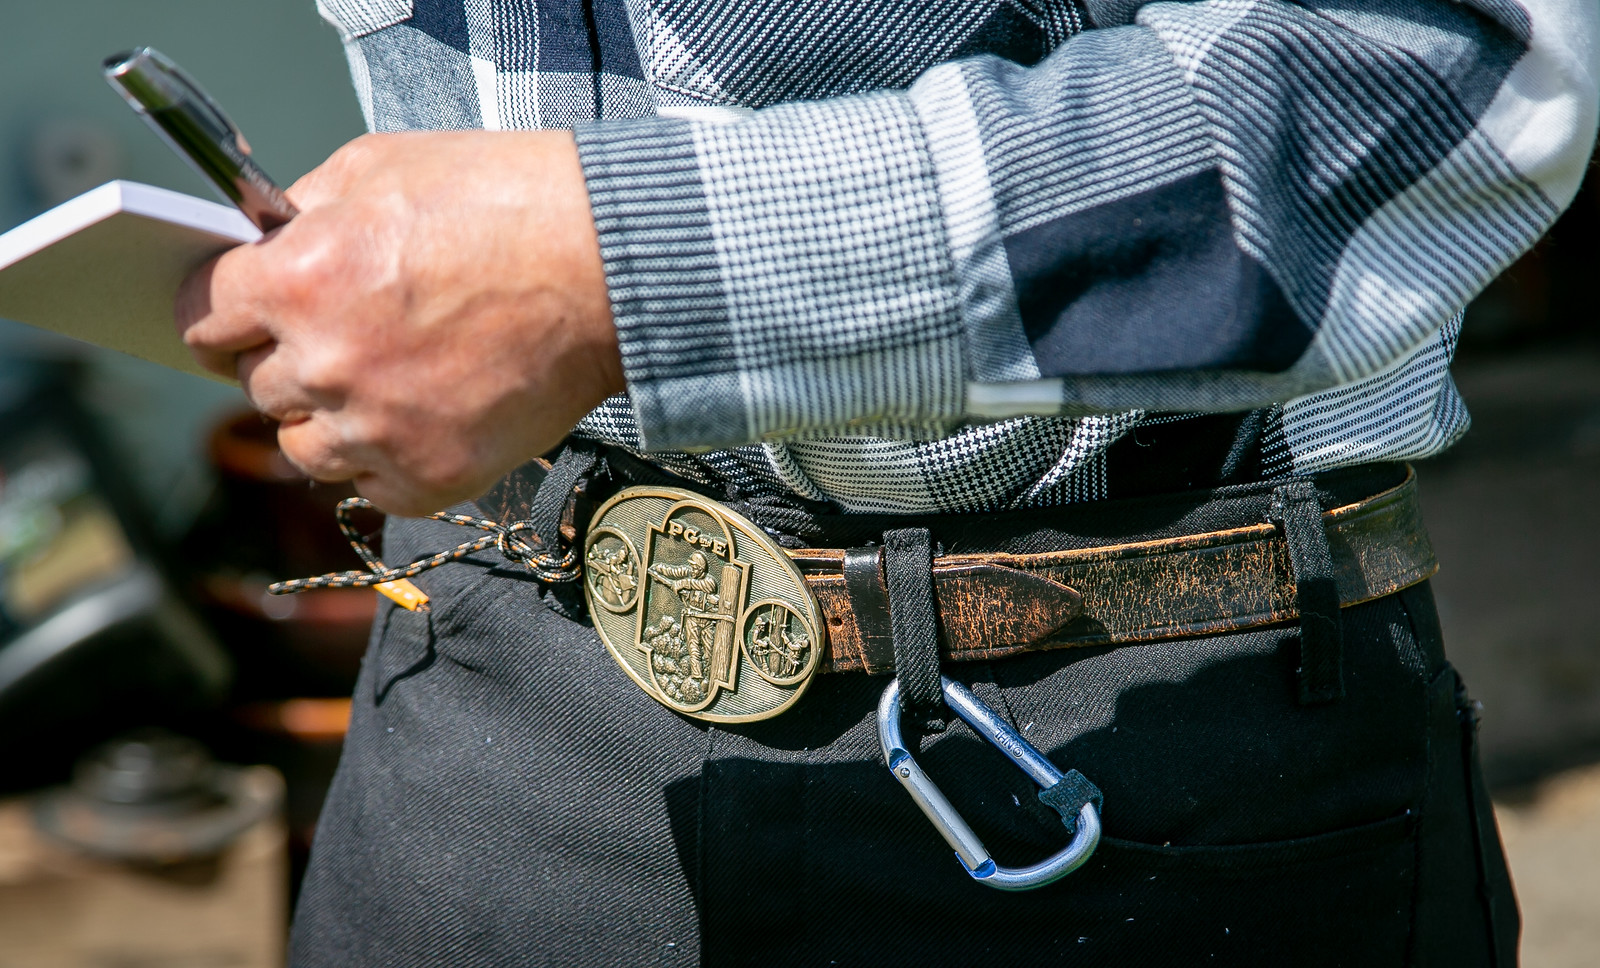 Lineman memorabilia collector, Bobo, at his home in San Juan Baptista, Calif. on March 29th, 2019.  belt buckle sold to benefit lineman's wife